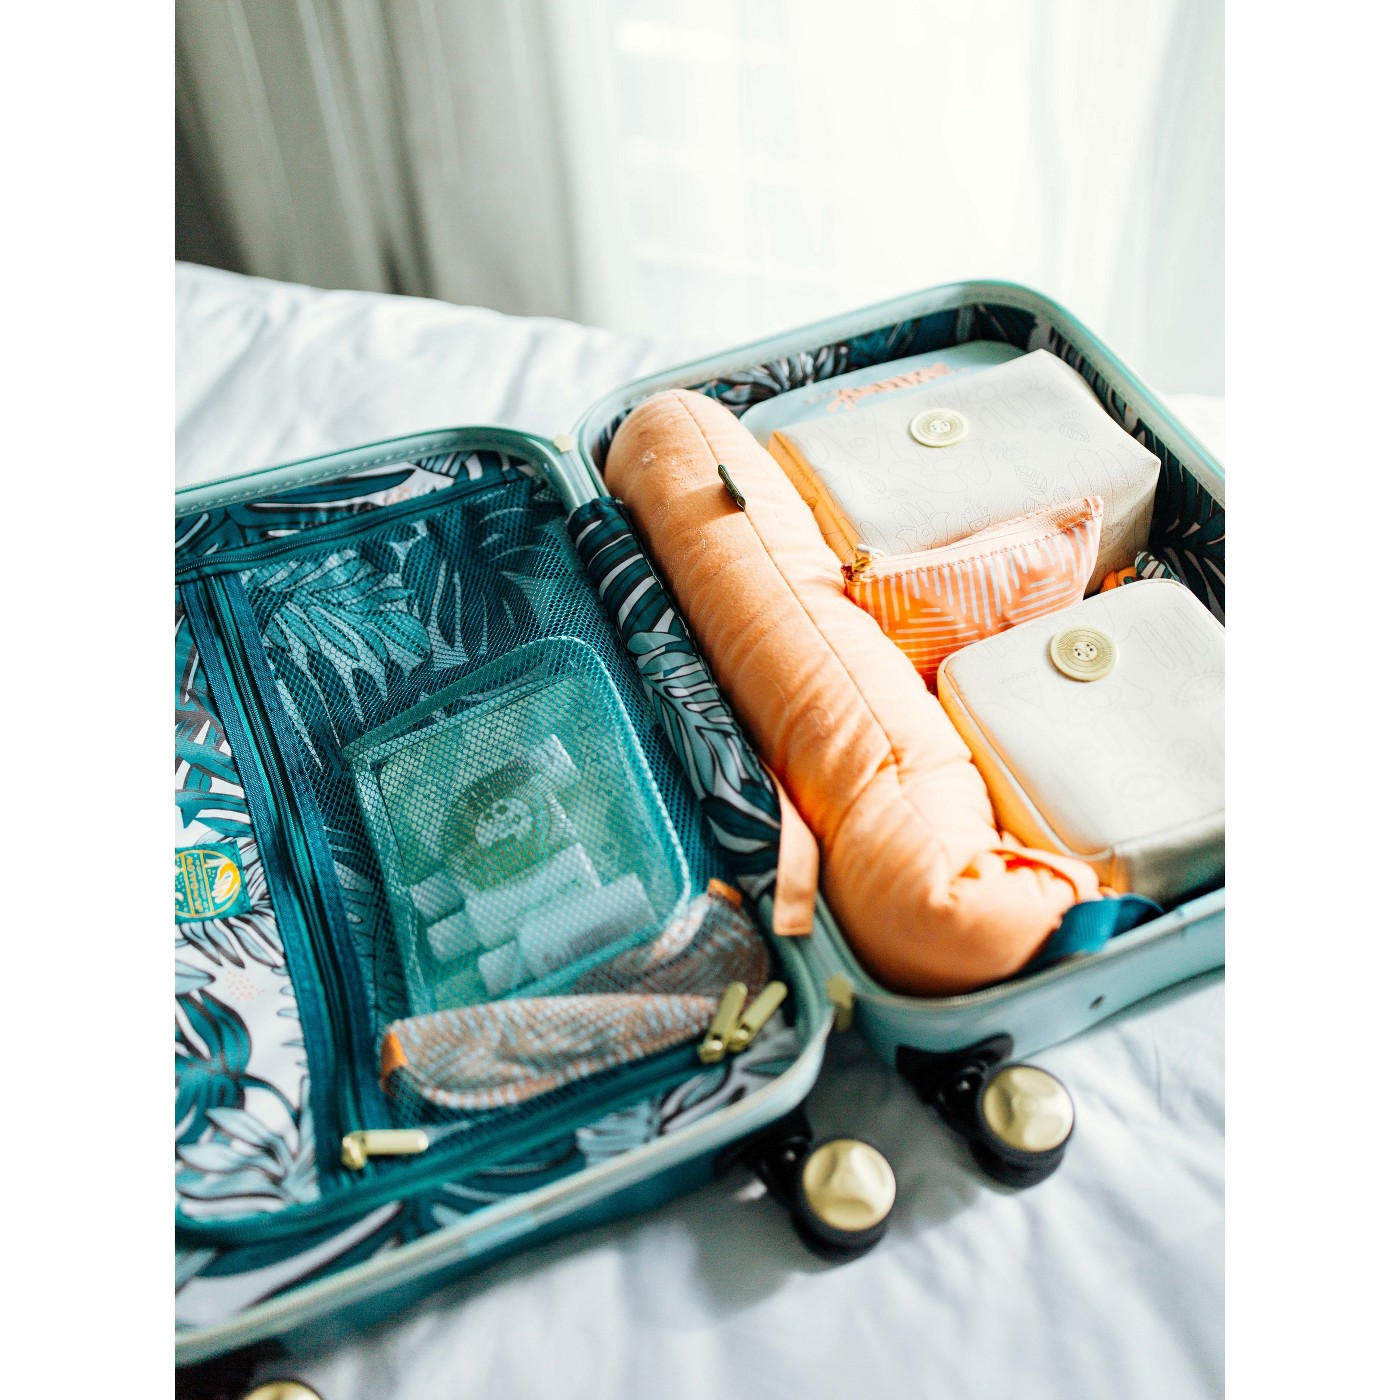 "Jungalow 20"" Hardside Carry On Suitcase - Green - image 8 of 10"